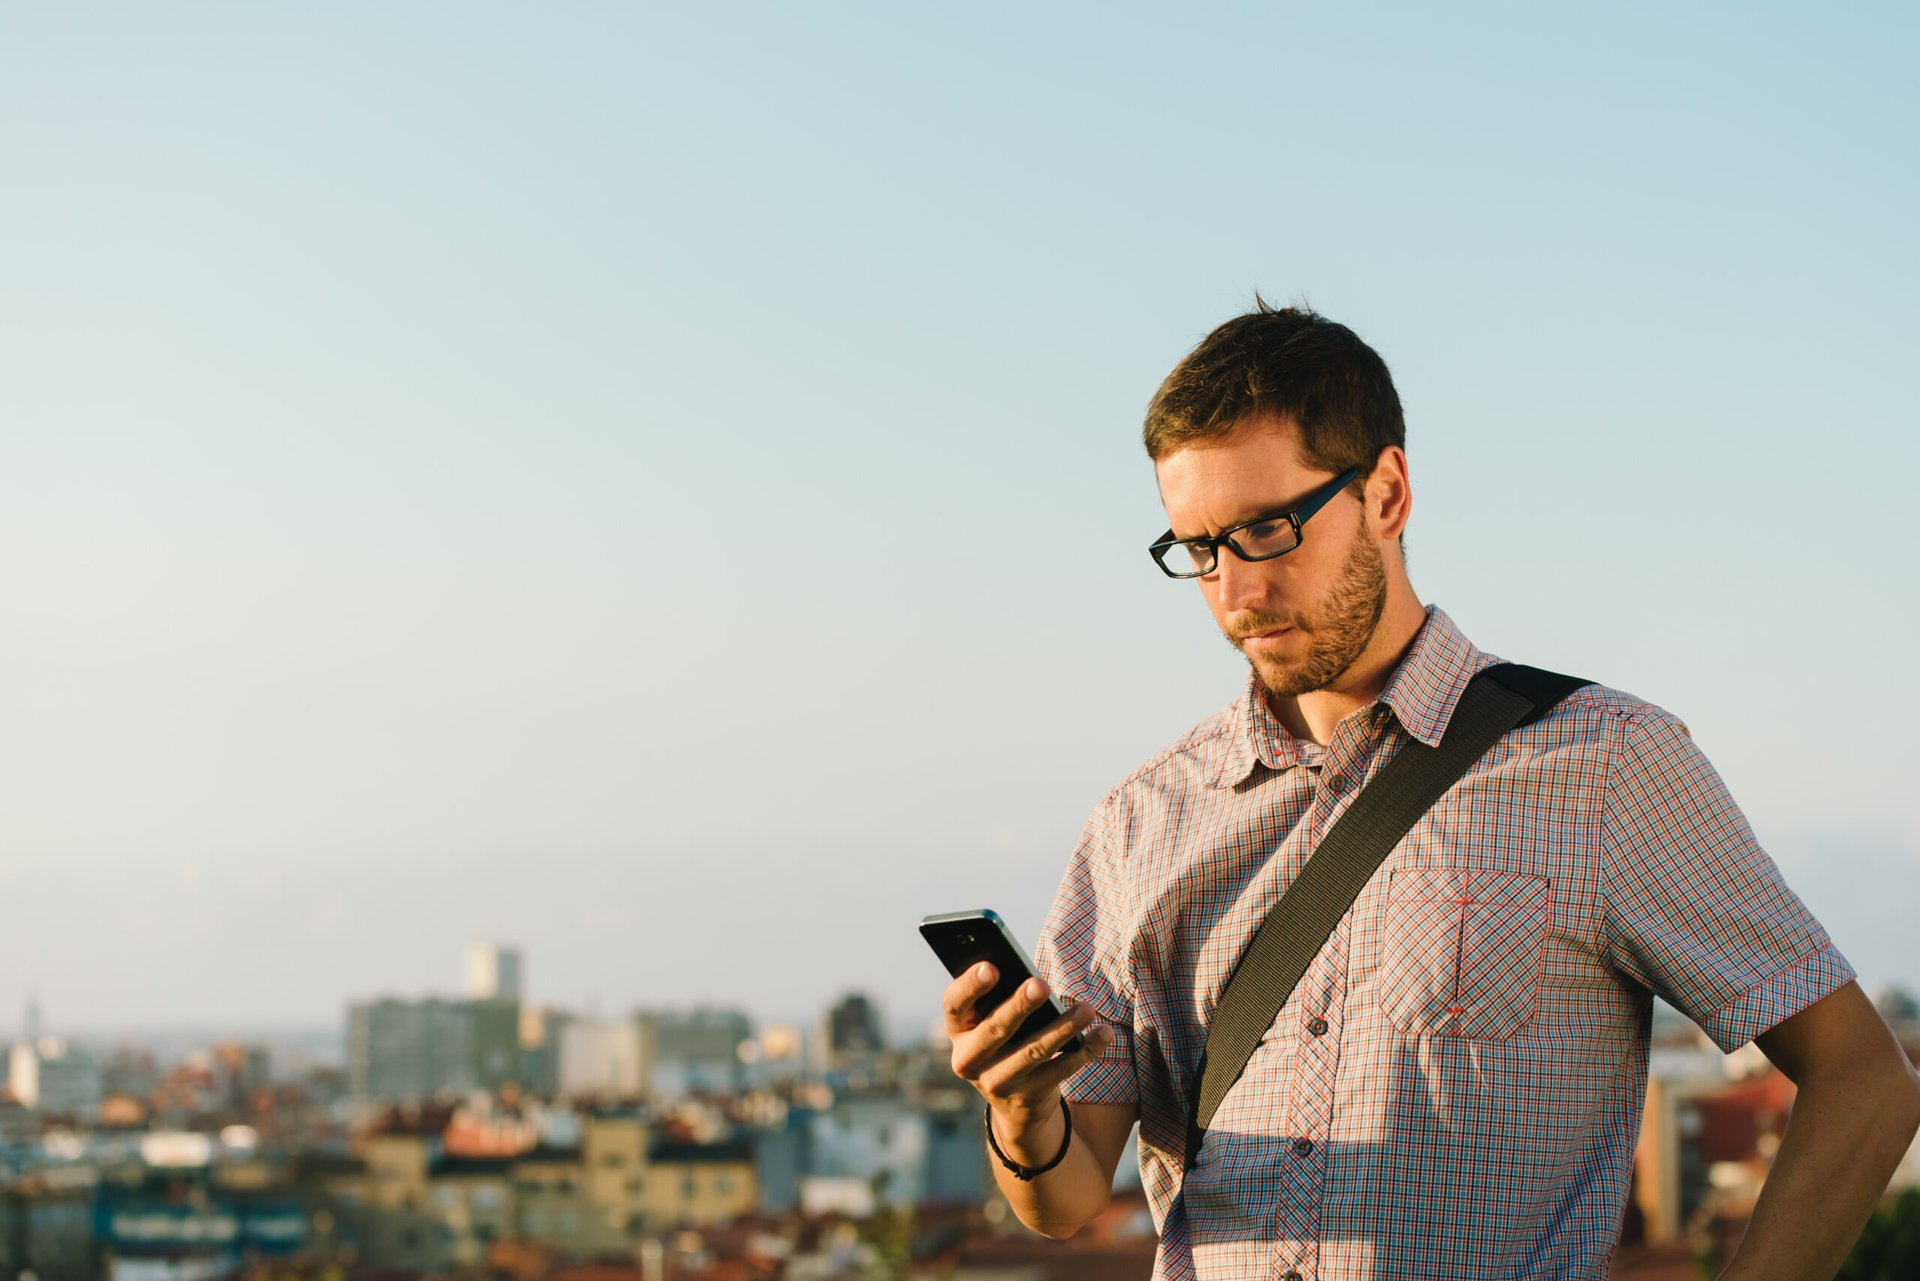 Man using his phone outdoors